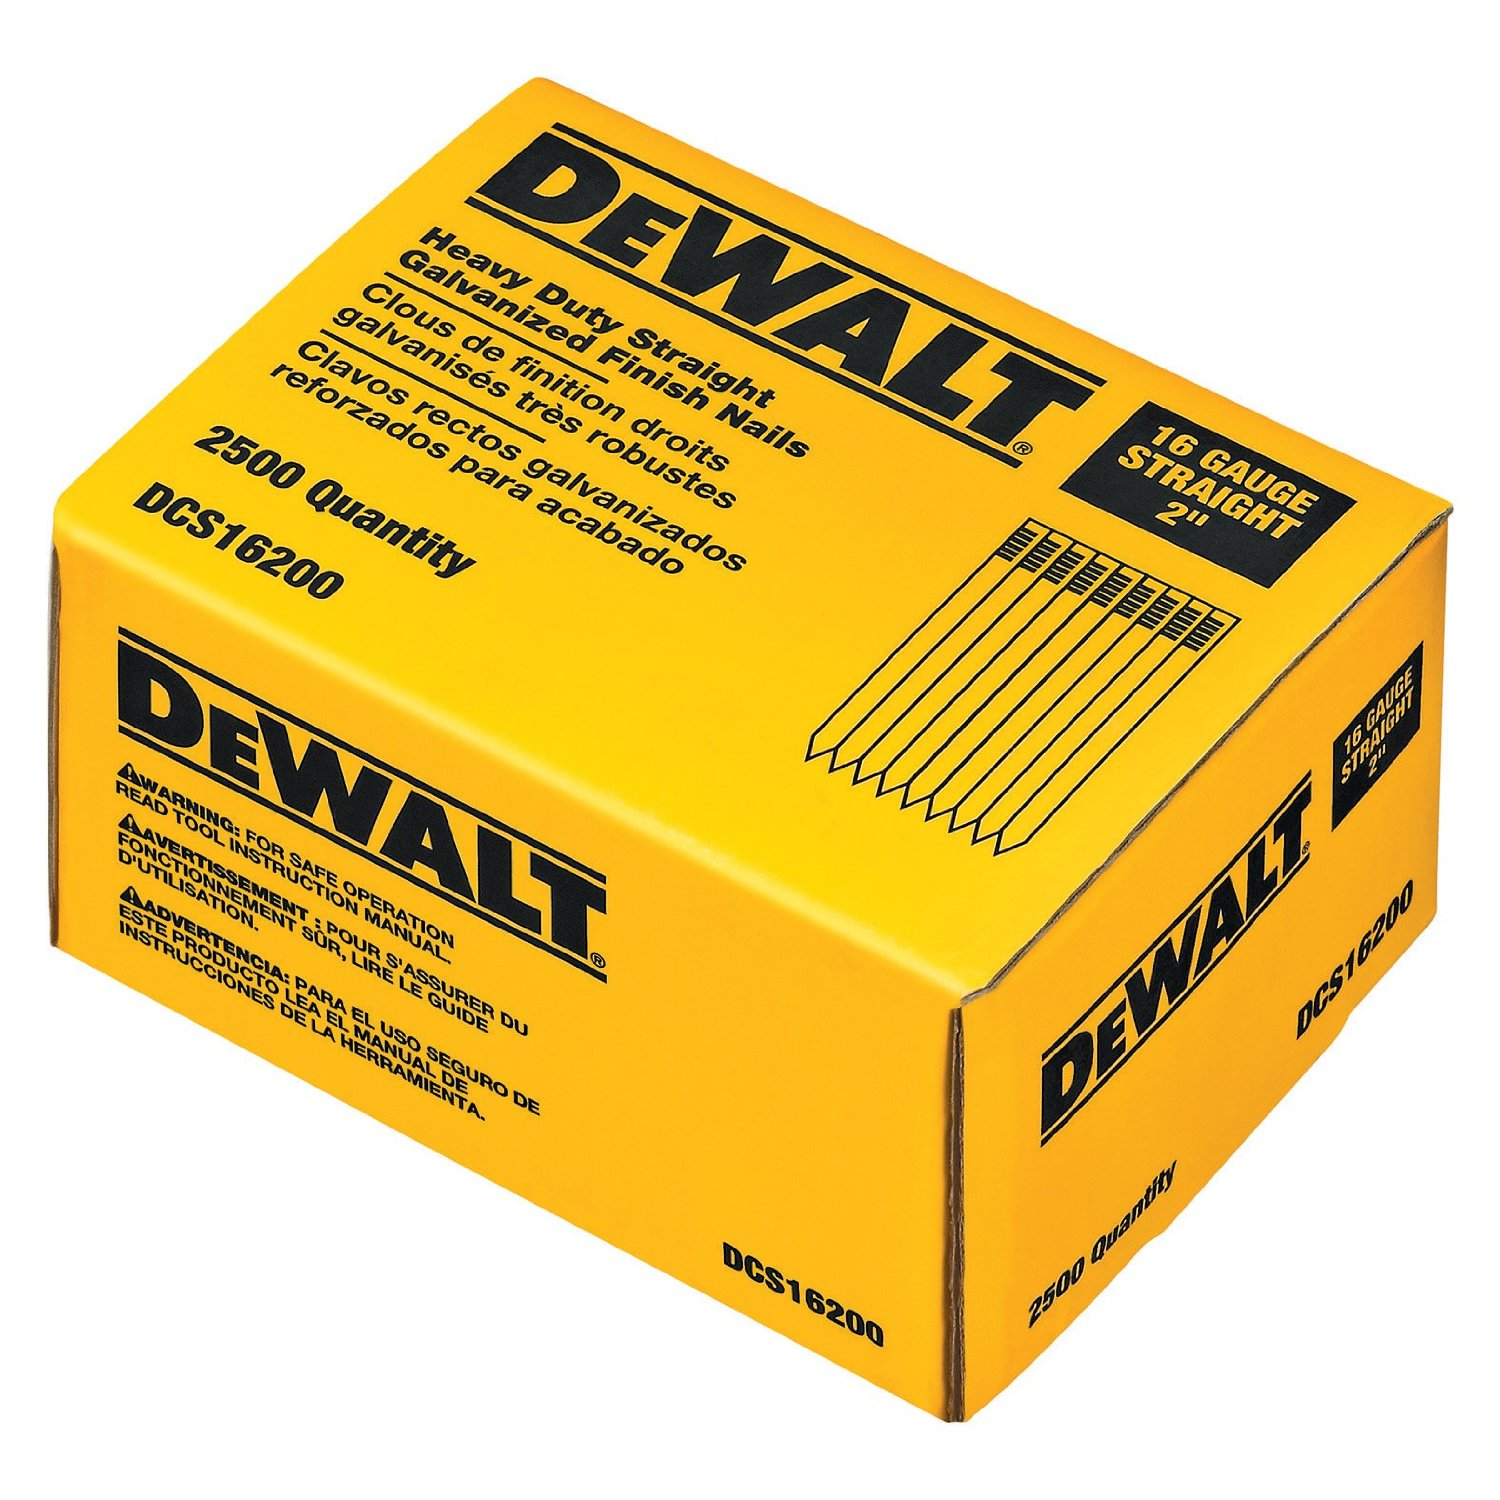 pneumatic nails-dewalt